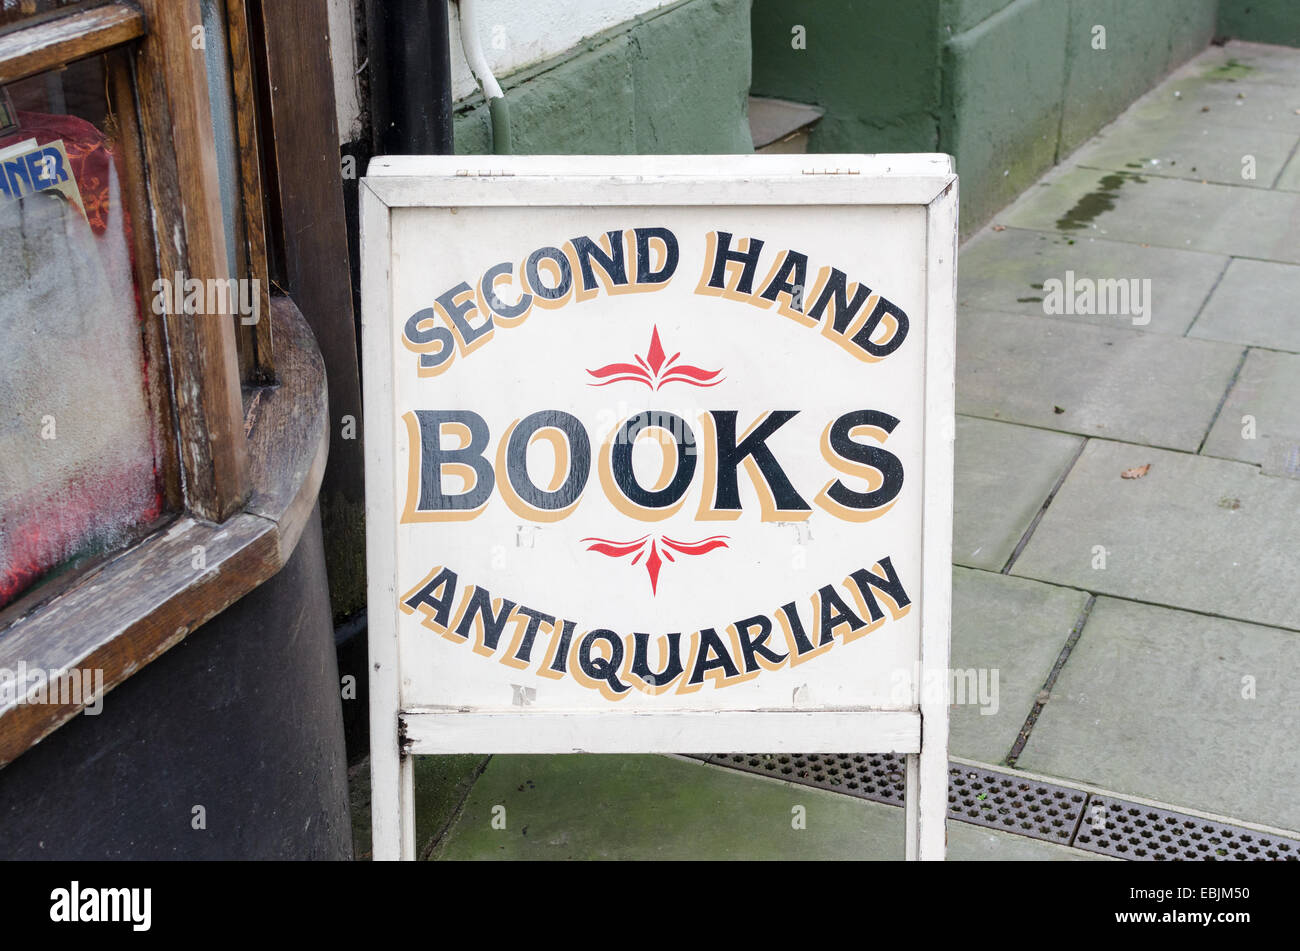 Sign for Second Hand and Antiquarian books outside a shop in the Herefordshire town of Ross-on-Wye - Stock Image